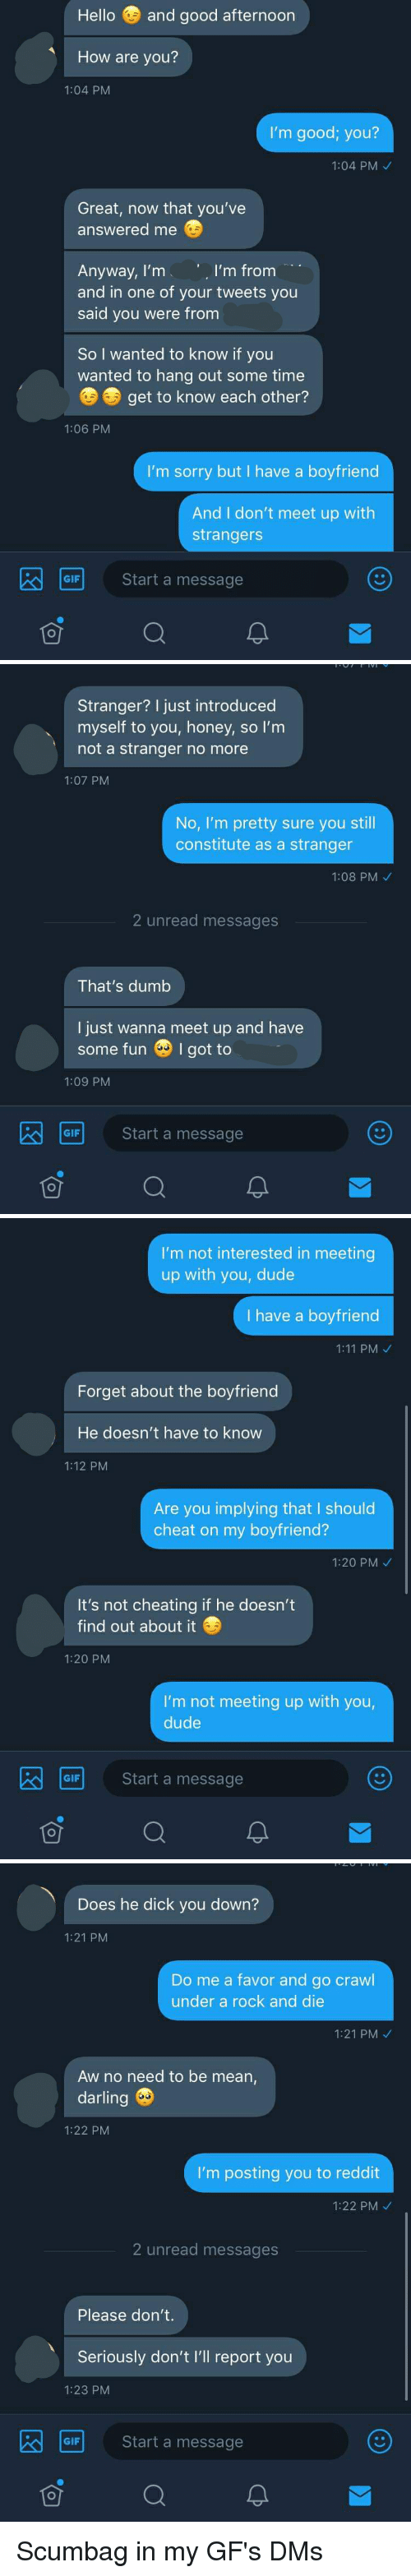 Not Cheating: Hello and good afternoon  How are you?  1:04 PM  I'm good; you?  1:04 PM  Great, now that you've  answered me  I'm from  Anyway, I'm  and in one of your tweets you  said you were from  So I wanted to know if you  wanted to hang out some time  get to know each other?  1:06 PM  I'm sorry but I have a boyfriend  And I don't meet up with  strangers  GIF  Start a message   Stranger? I just introduced  myself to you, honey, so I'm  not a stranger no more  1:07 PM  No, I'm pretty sure you still  constitute as a stranger  1:08 PM  2 unread messages  That's dumb  I just wanna meet up and have  some fun I got to  1:09 PM  GIF  Start a message   I'm not interested in meeting  up with you, dude  I have a boyfriend  1:11 PM  Forget about the boyfriend  He doesn't have to know  1:12 PM  Are you implying that I should  cheat on my boyfriend?  1:20 PM  It's not cheating if he doesn't  find out about it  1:20 PM  I'm not meeting up with you,  dude  Start a message  GIF   Does he dick you down?  1:21 PM  Do me a favor and go crawl  under a rock and die  1:21 PM  Aw no need to be mean,  darling  1:22 PM  I'm posting you to reddit  1:22 PM  2 unread messages  Please don't.  Seriously don't I'll report you  1:23 PM  Start a message  GIF  可 Scumbag in my GF's DMs